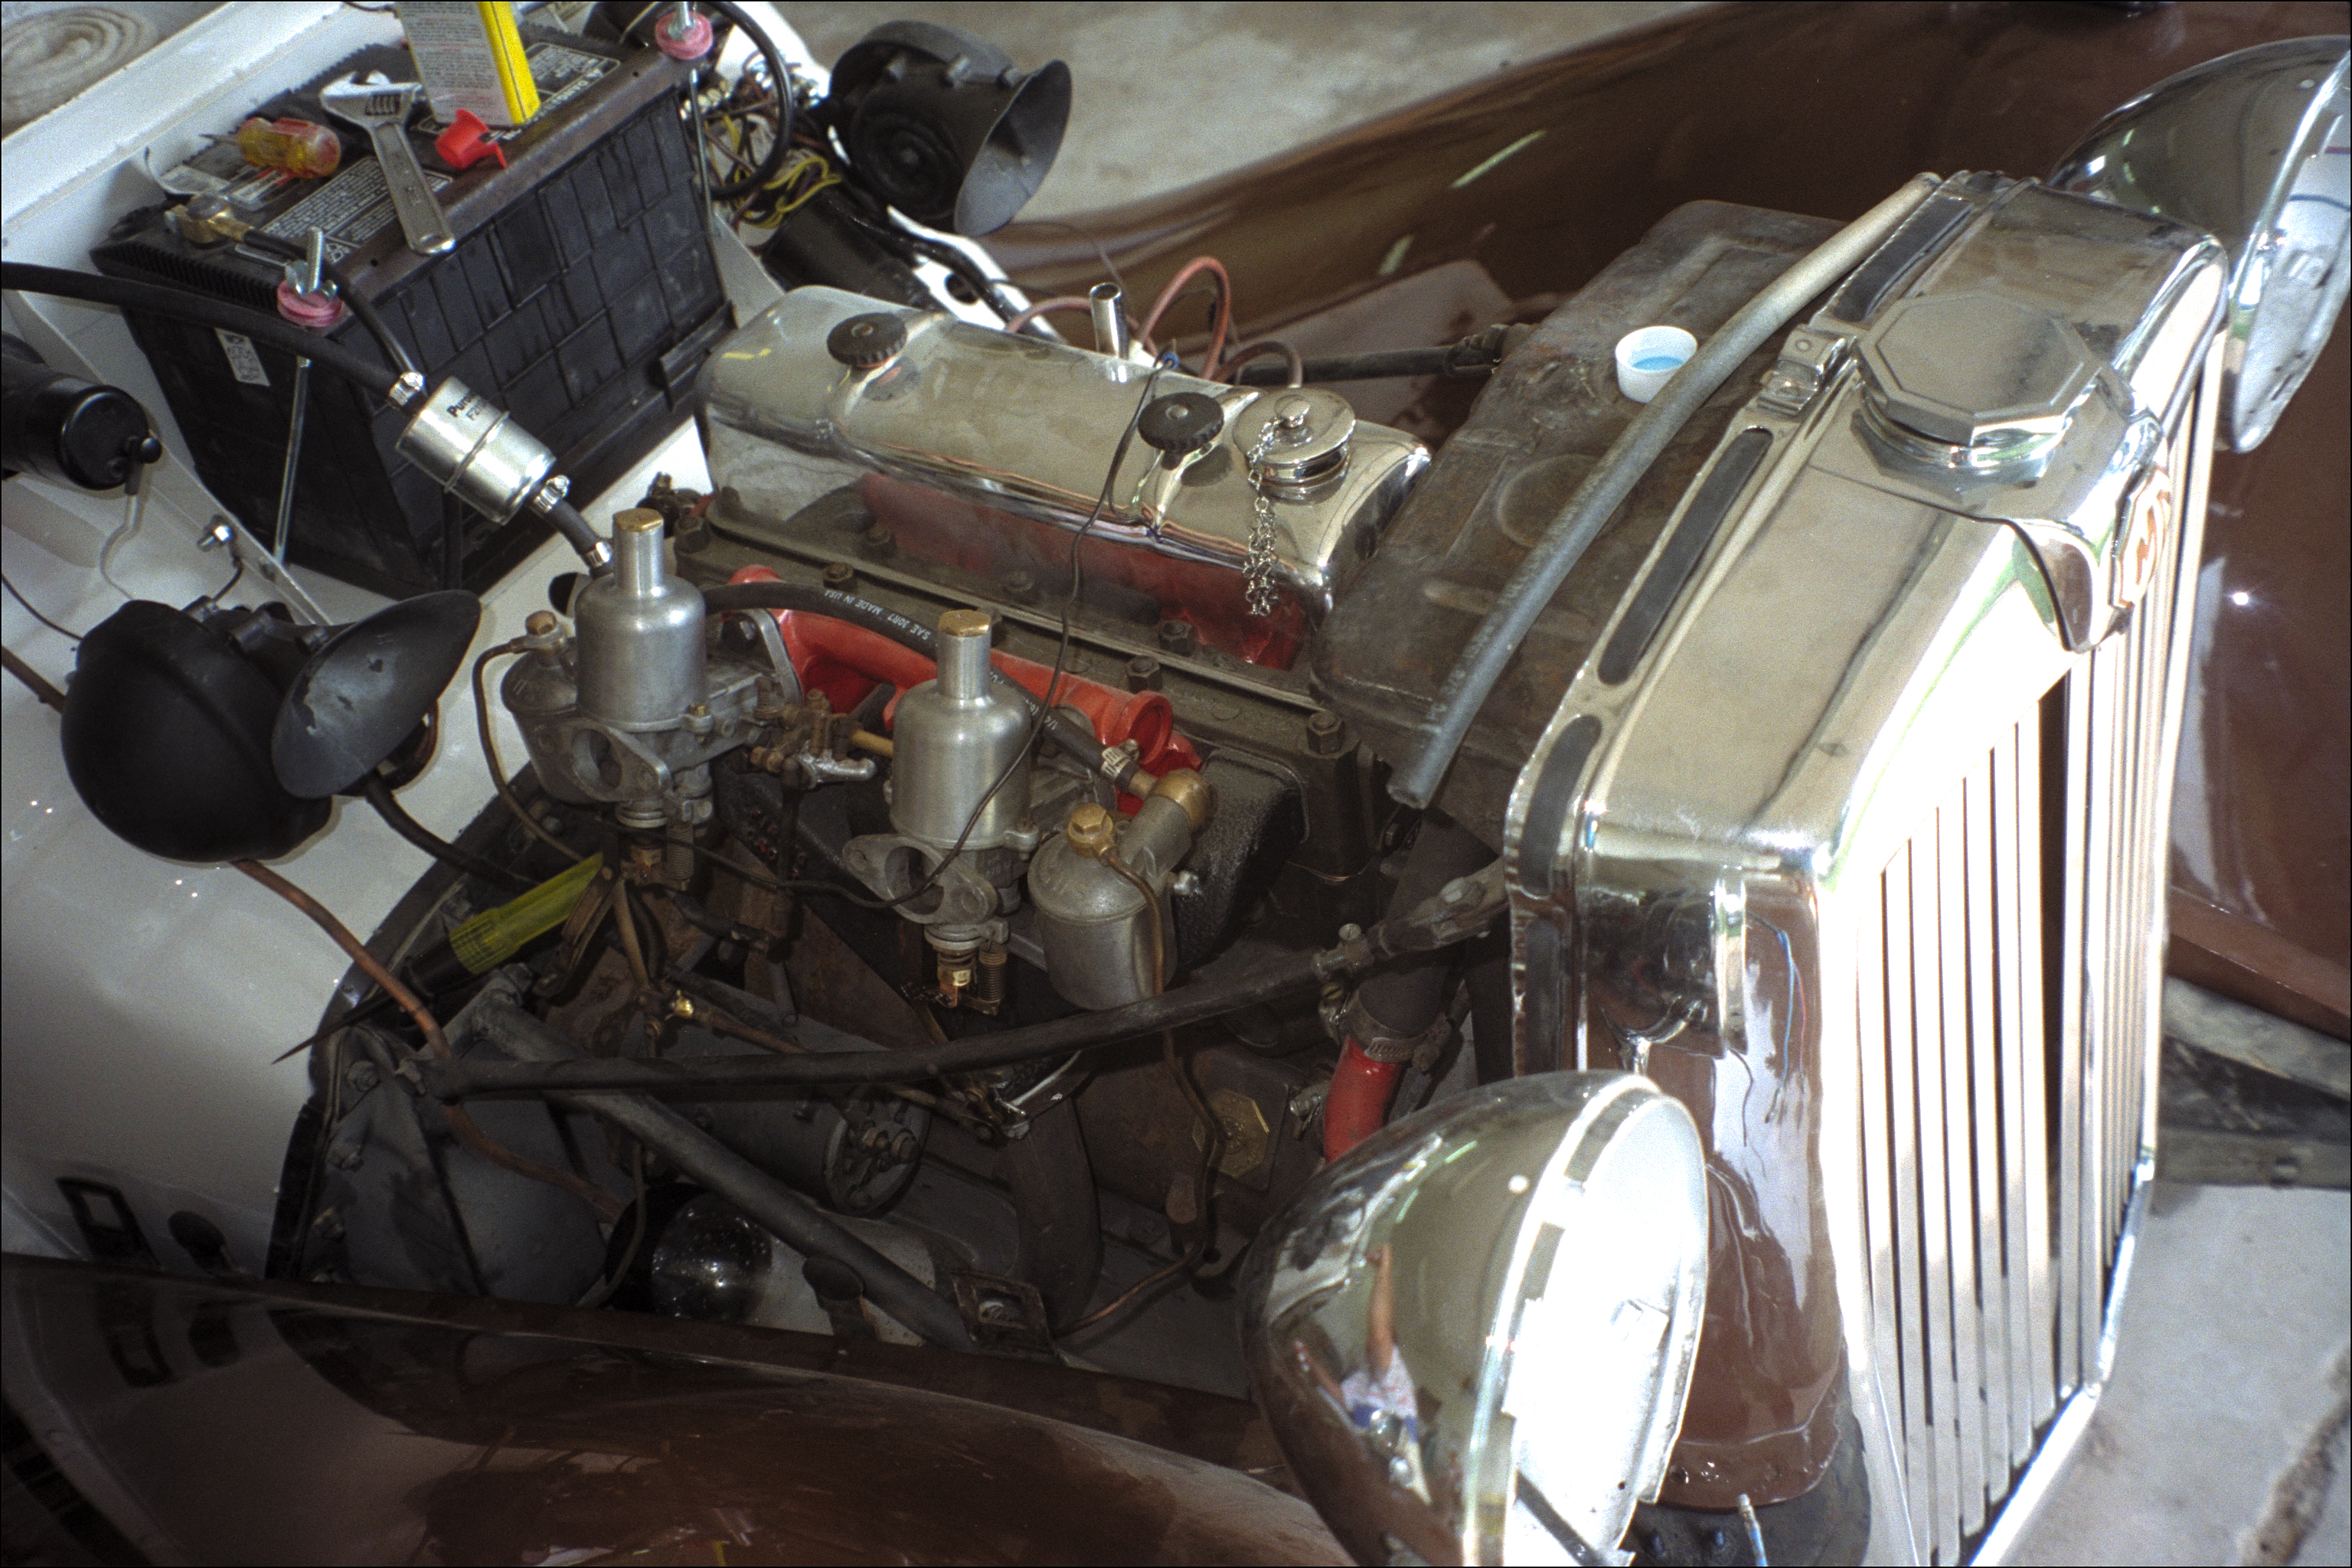 Engine ready, with new battery installed